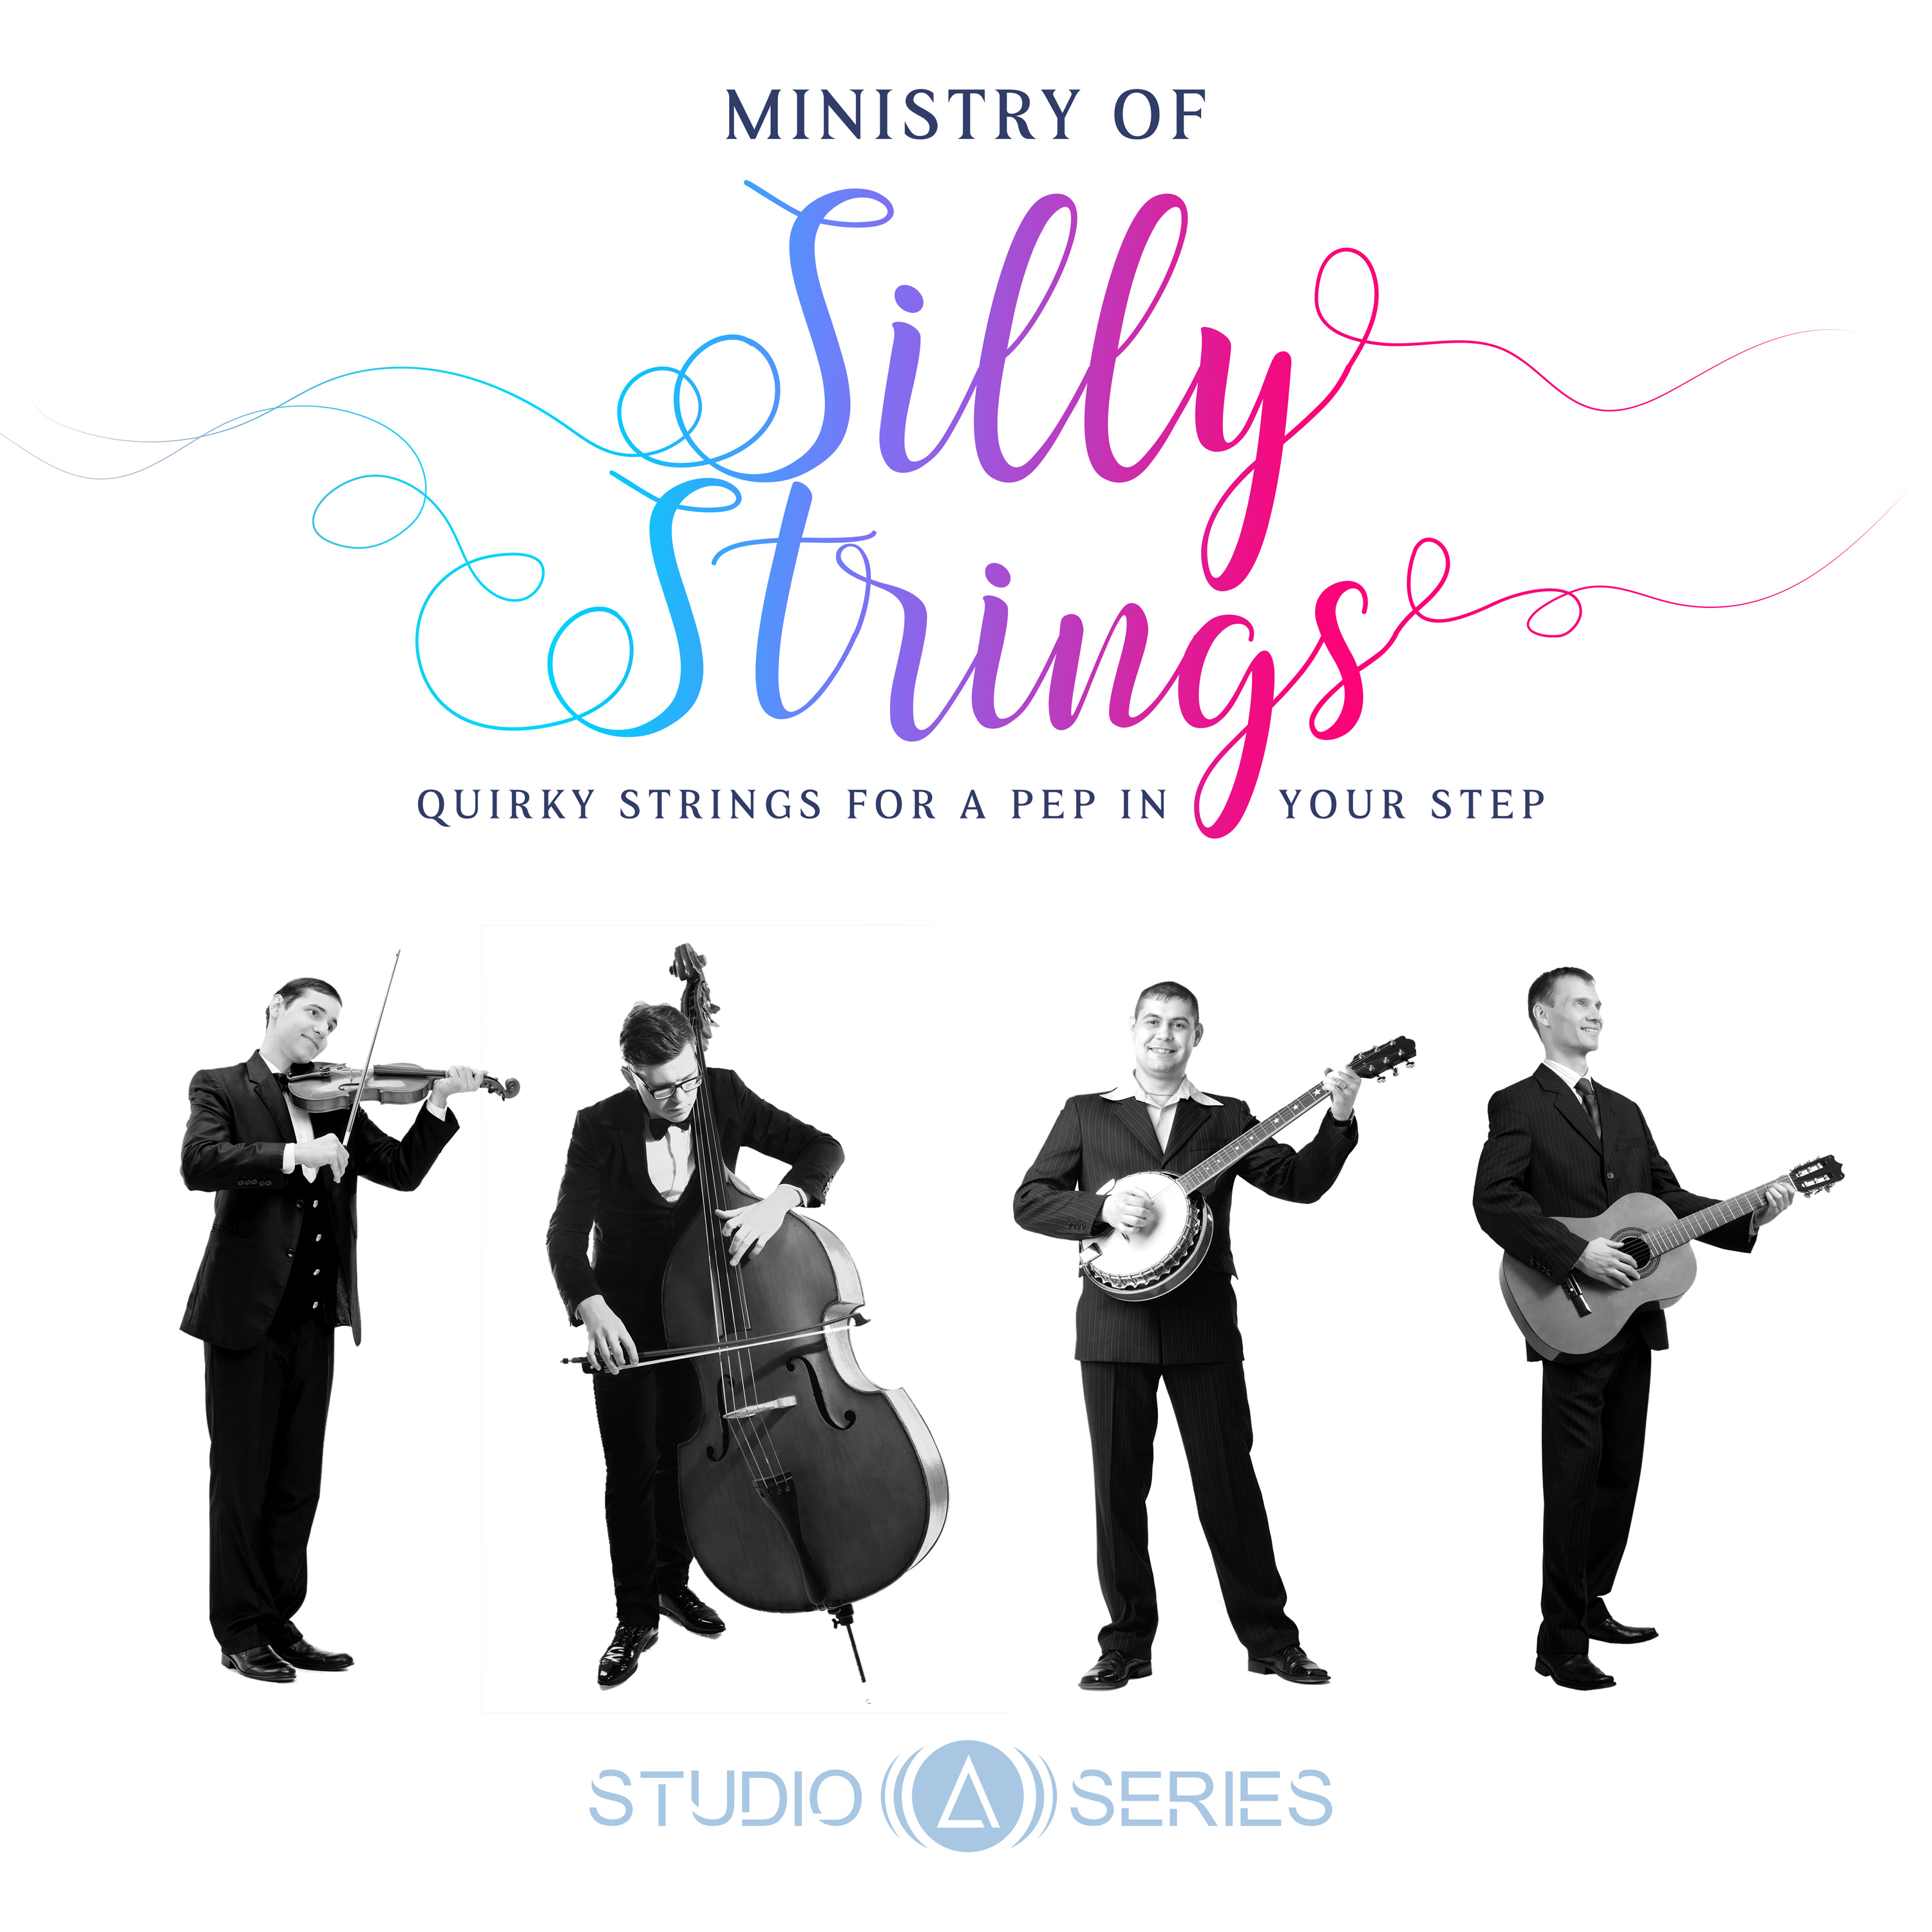 Ministry of Silly Strings